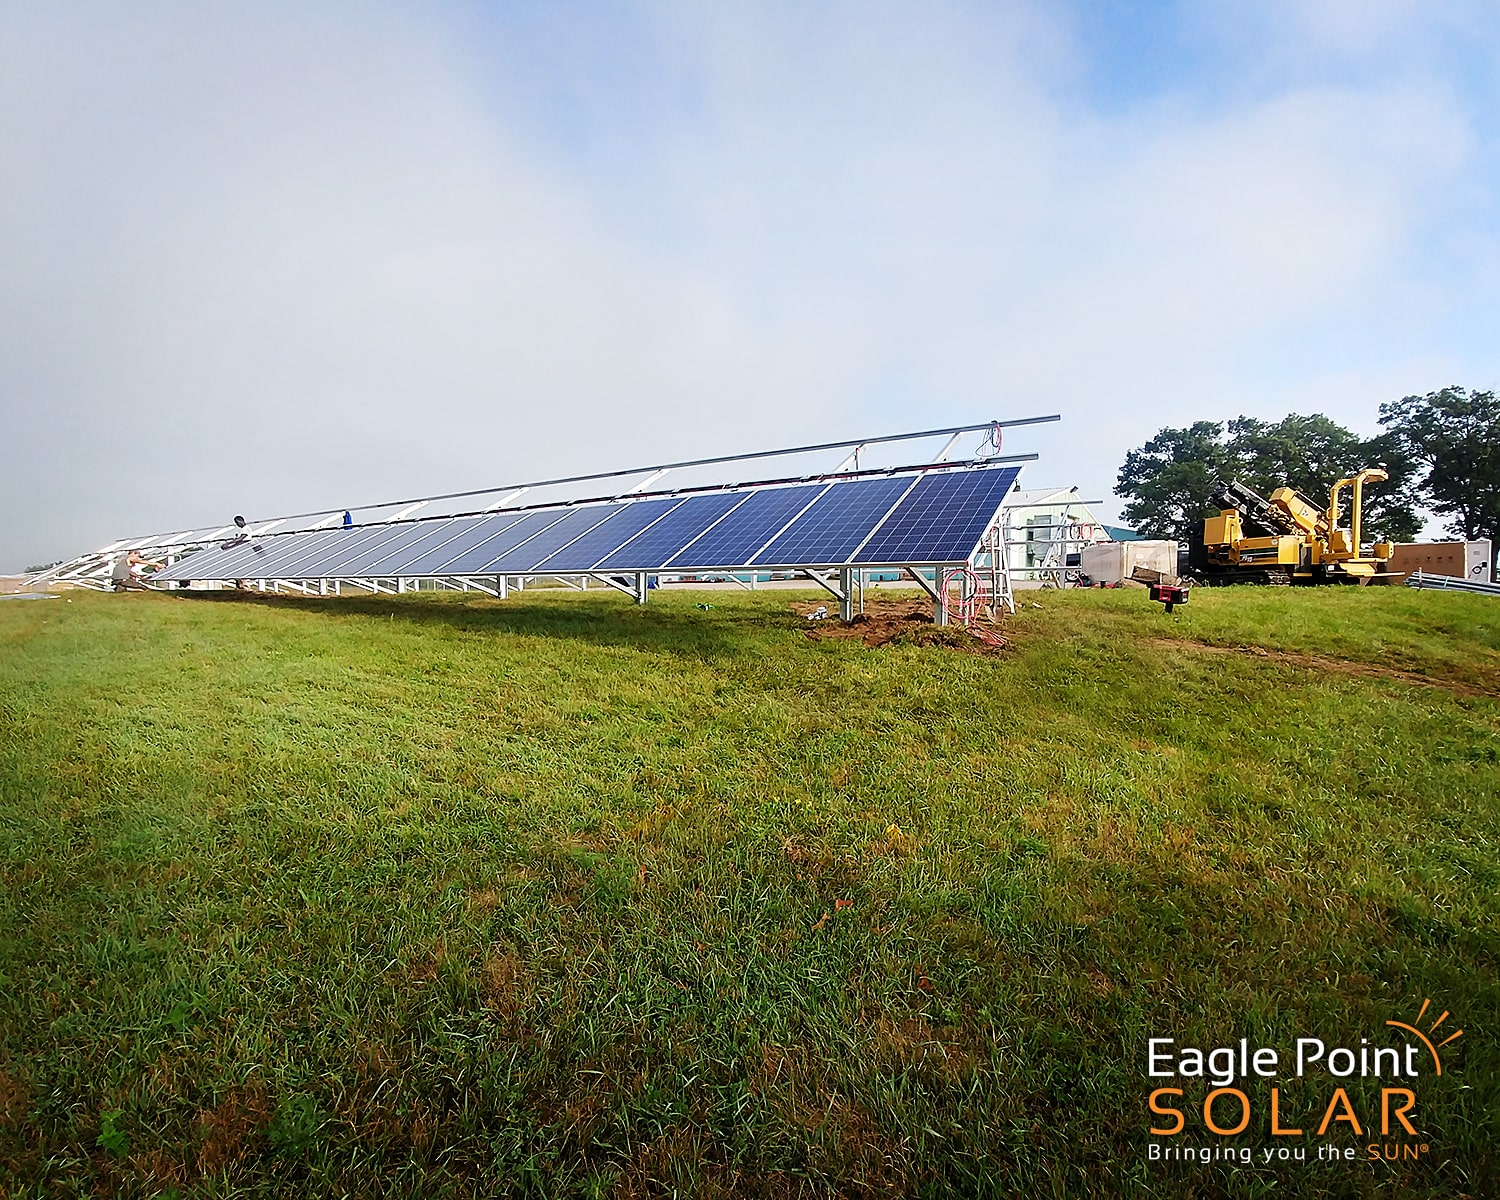 Photo of ground solar being built